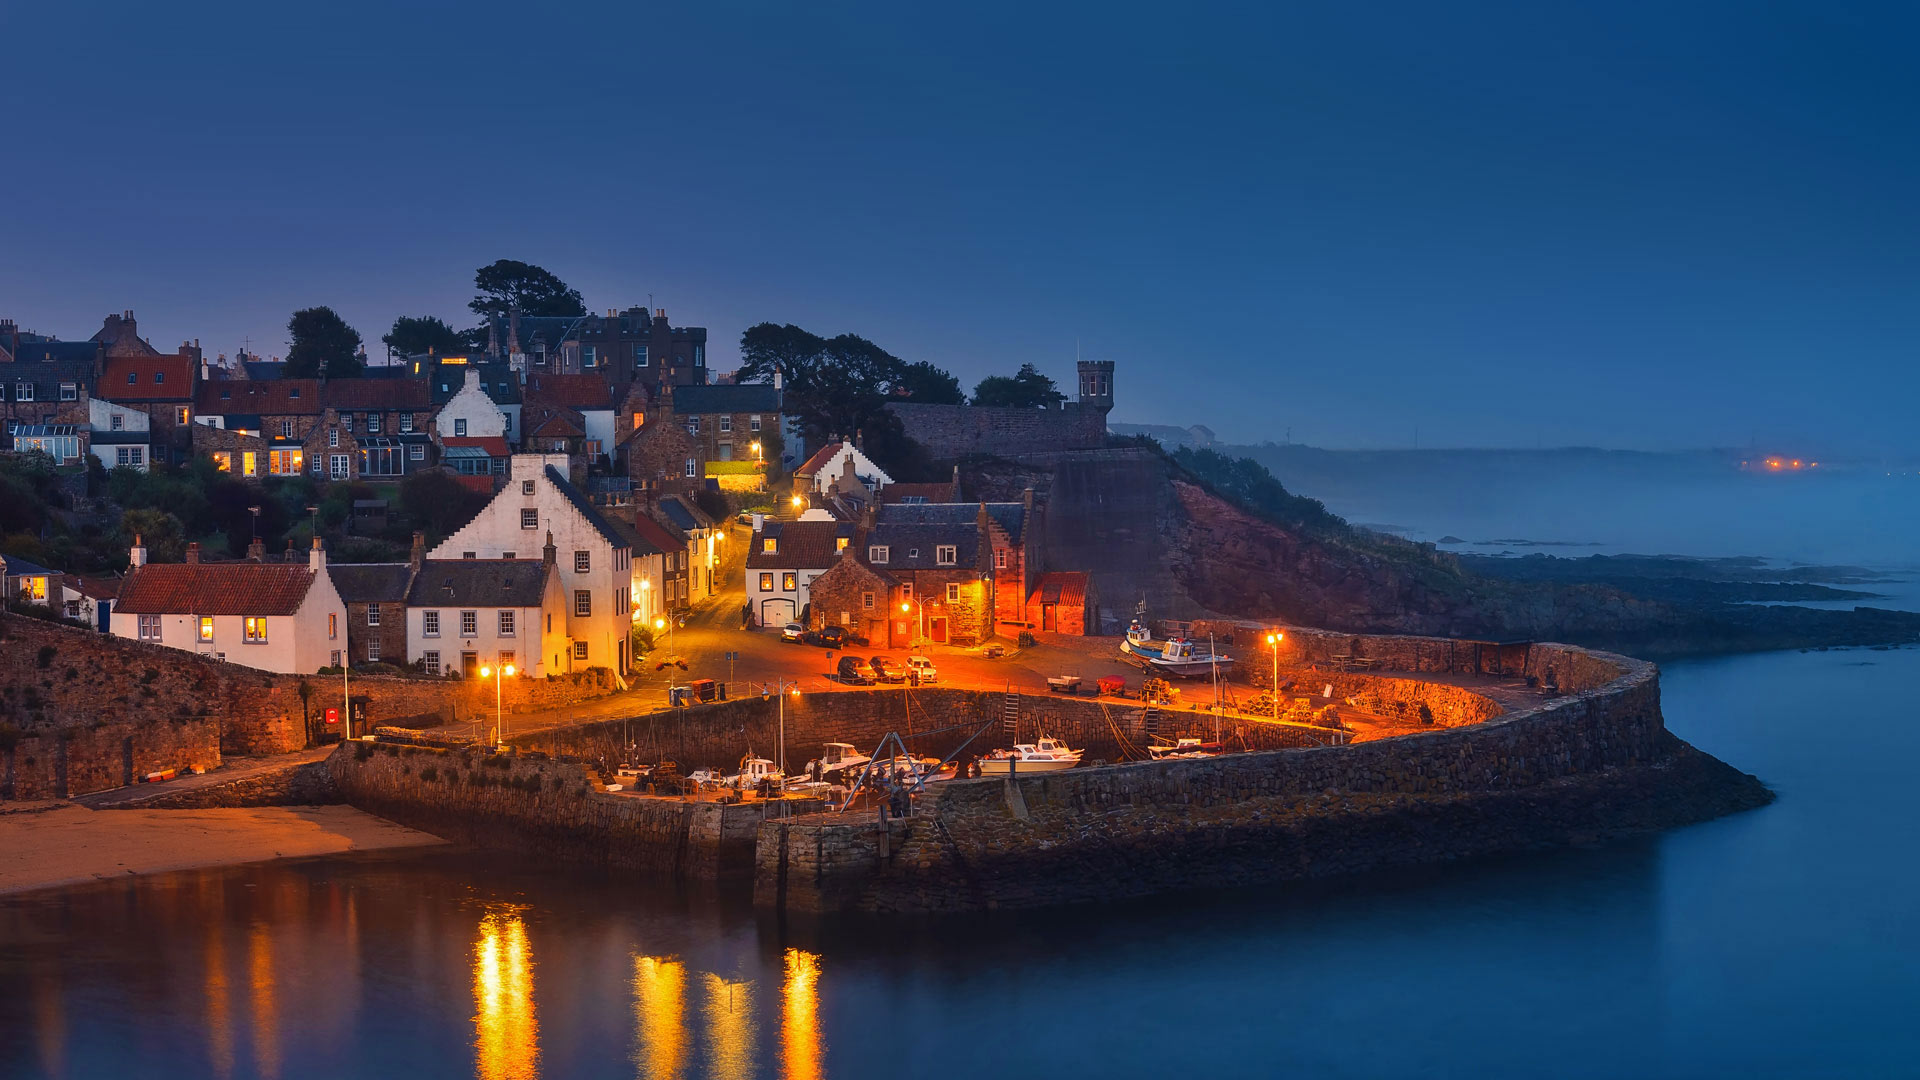 Crail Harbour in the East Neuk of Fife, Scotland (© Pietro Bevilacqua/500px)